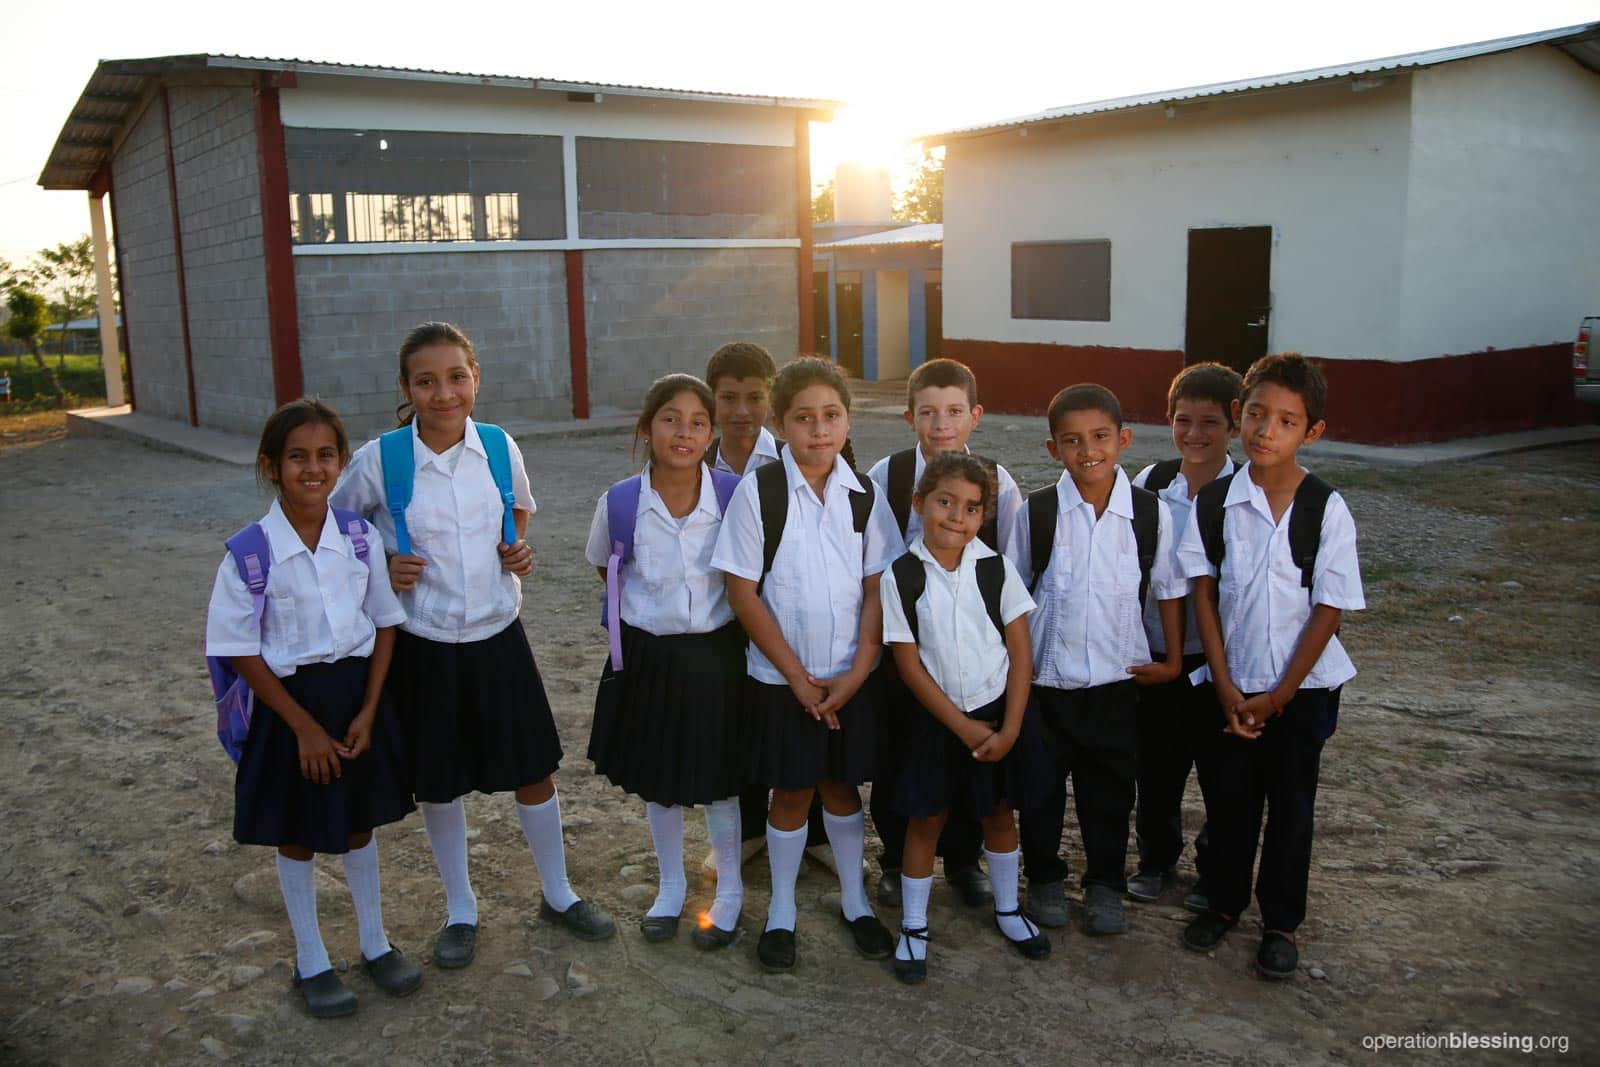 Honduran children stand with their new uniforms and backpacks in front of their new school.